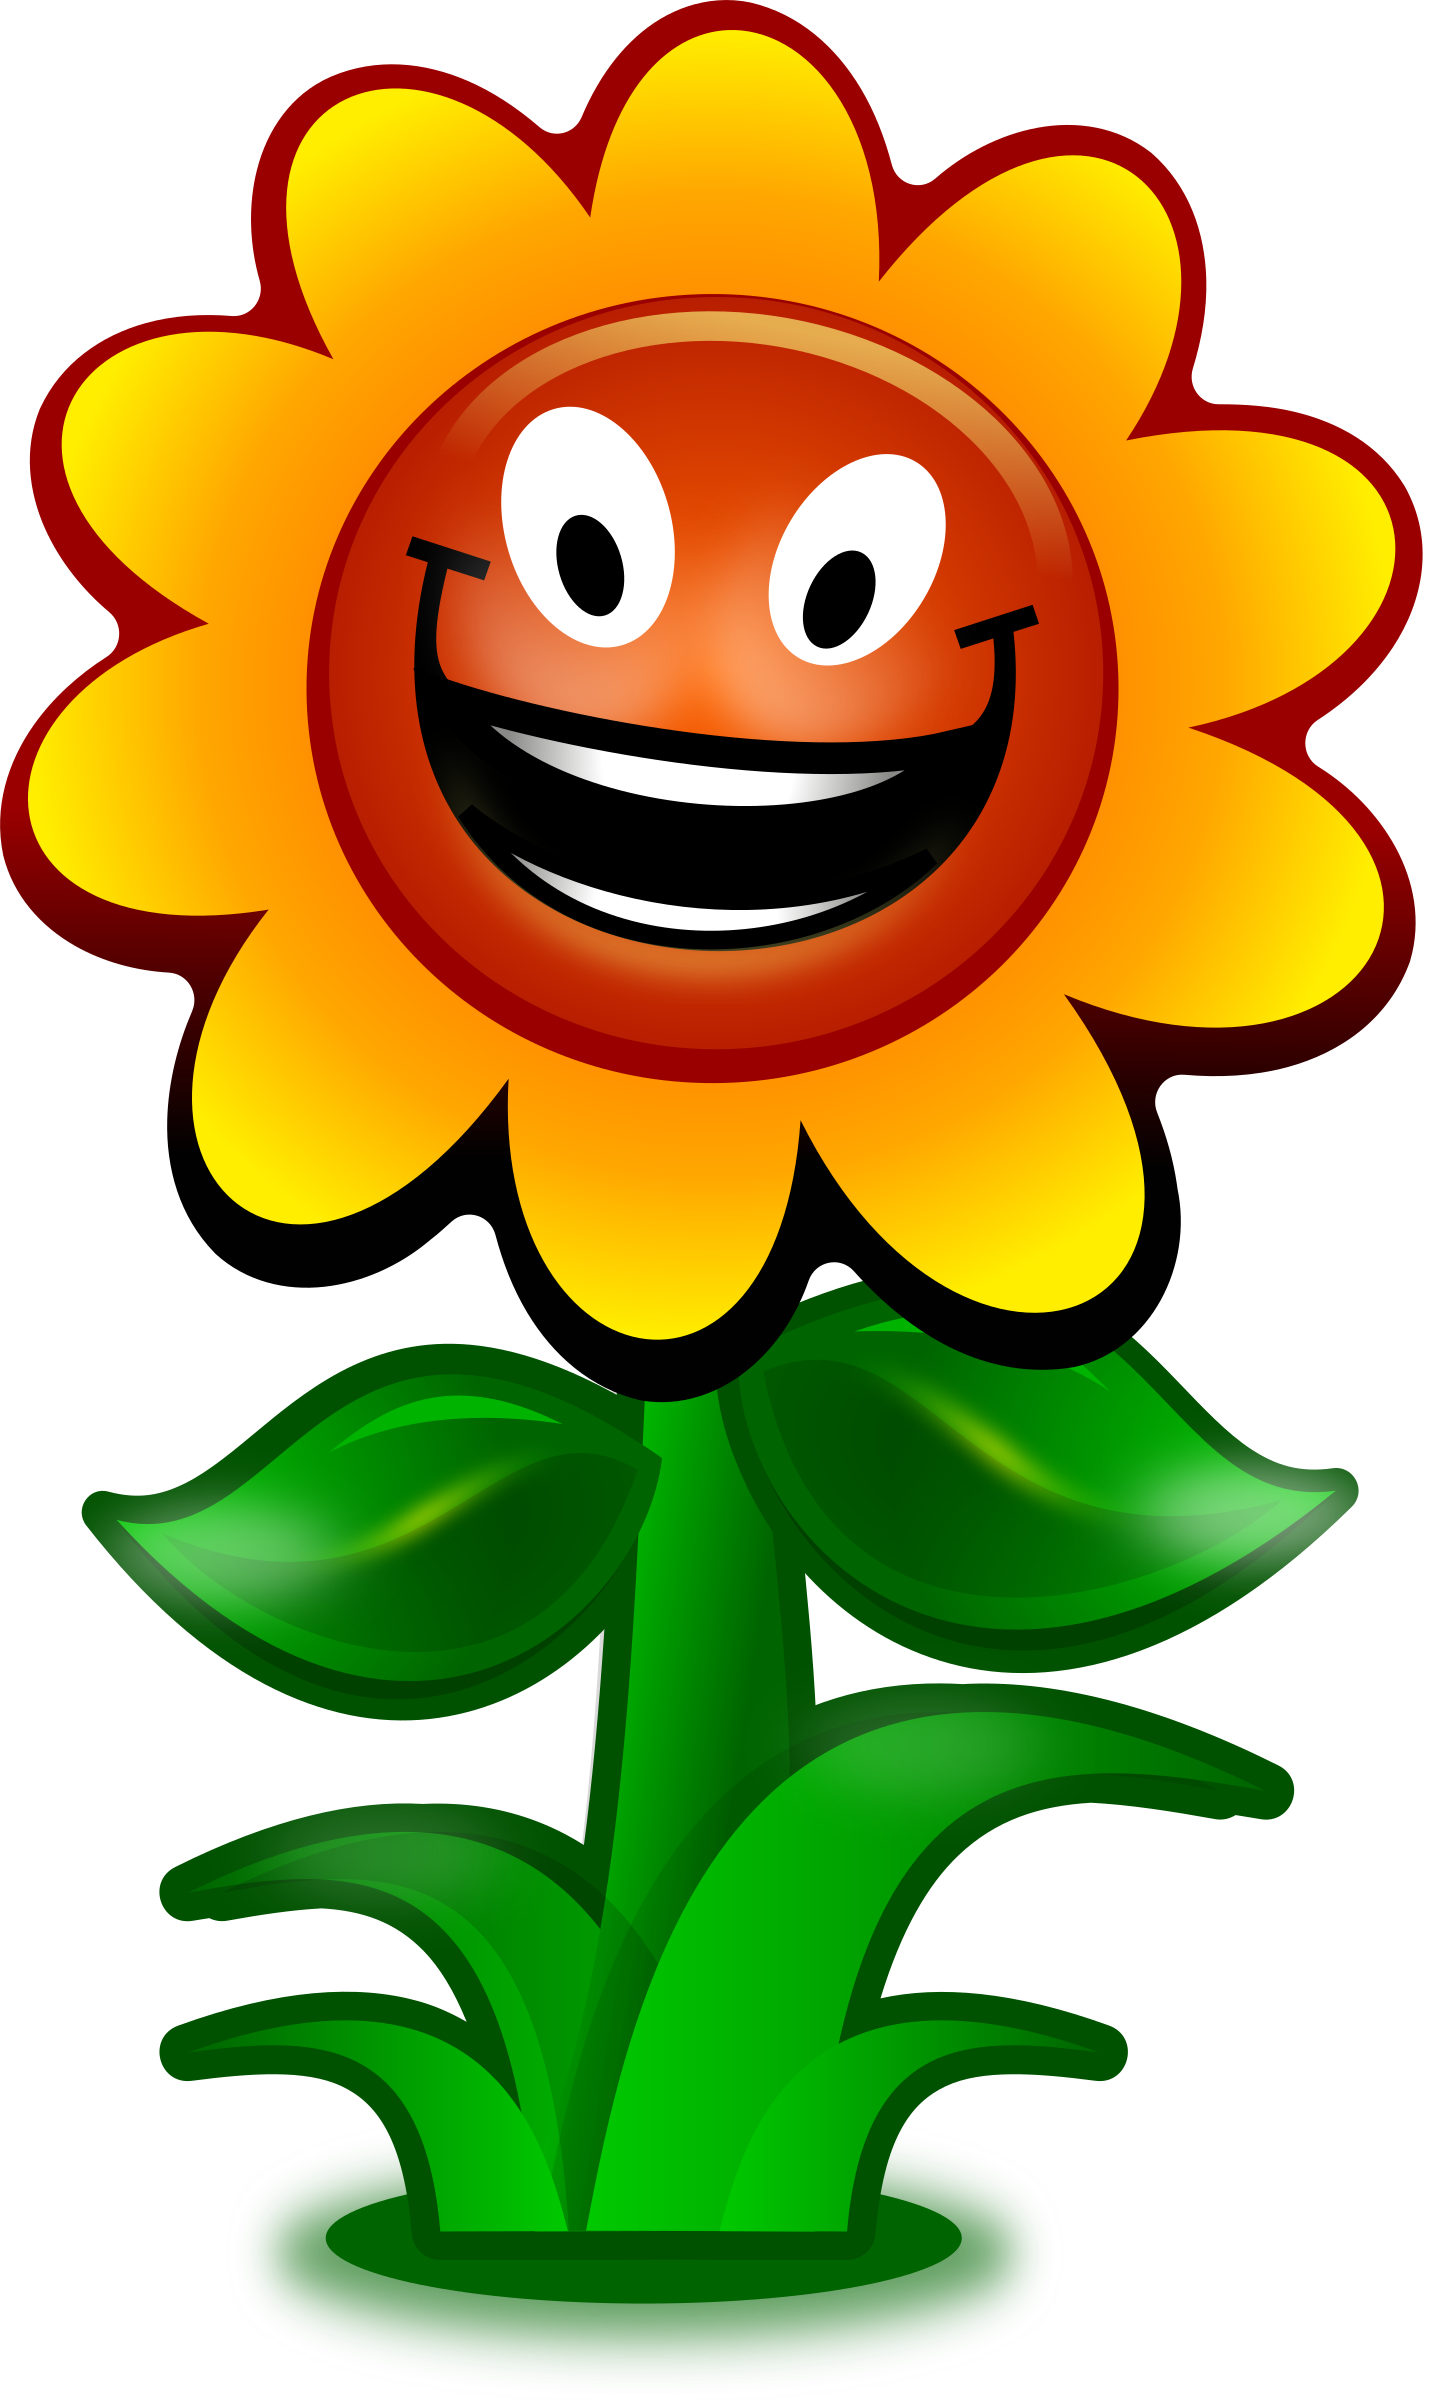 Clipart cartoon game character. Smiley face clip art flower